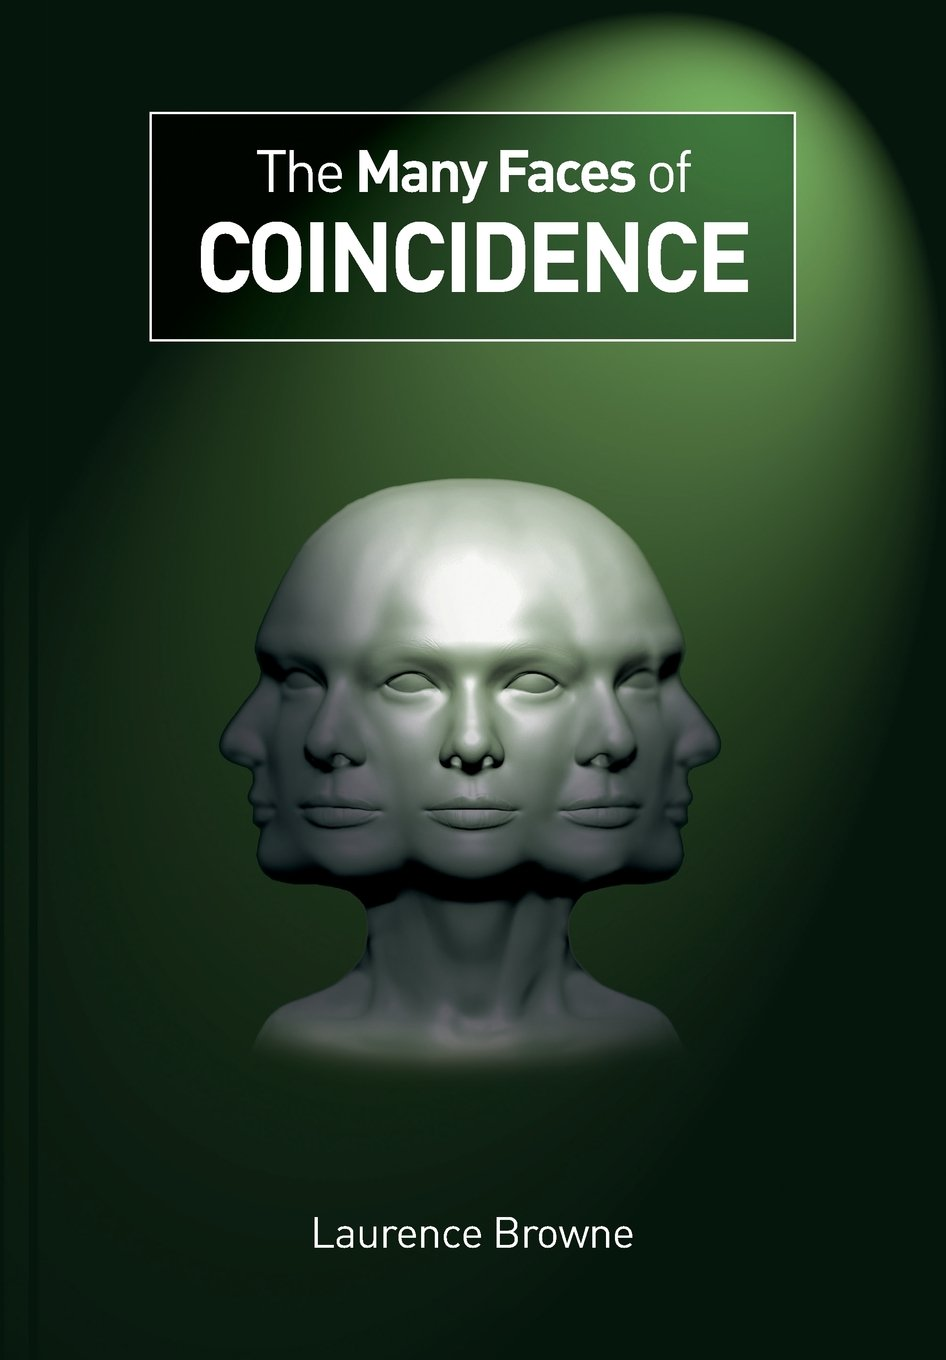 The Many Faces of Coincidence by Laurence Browne